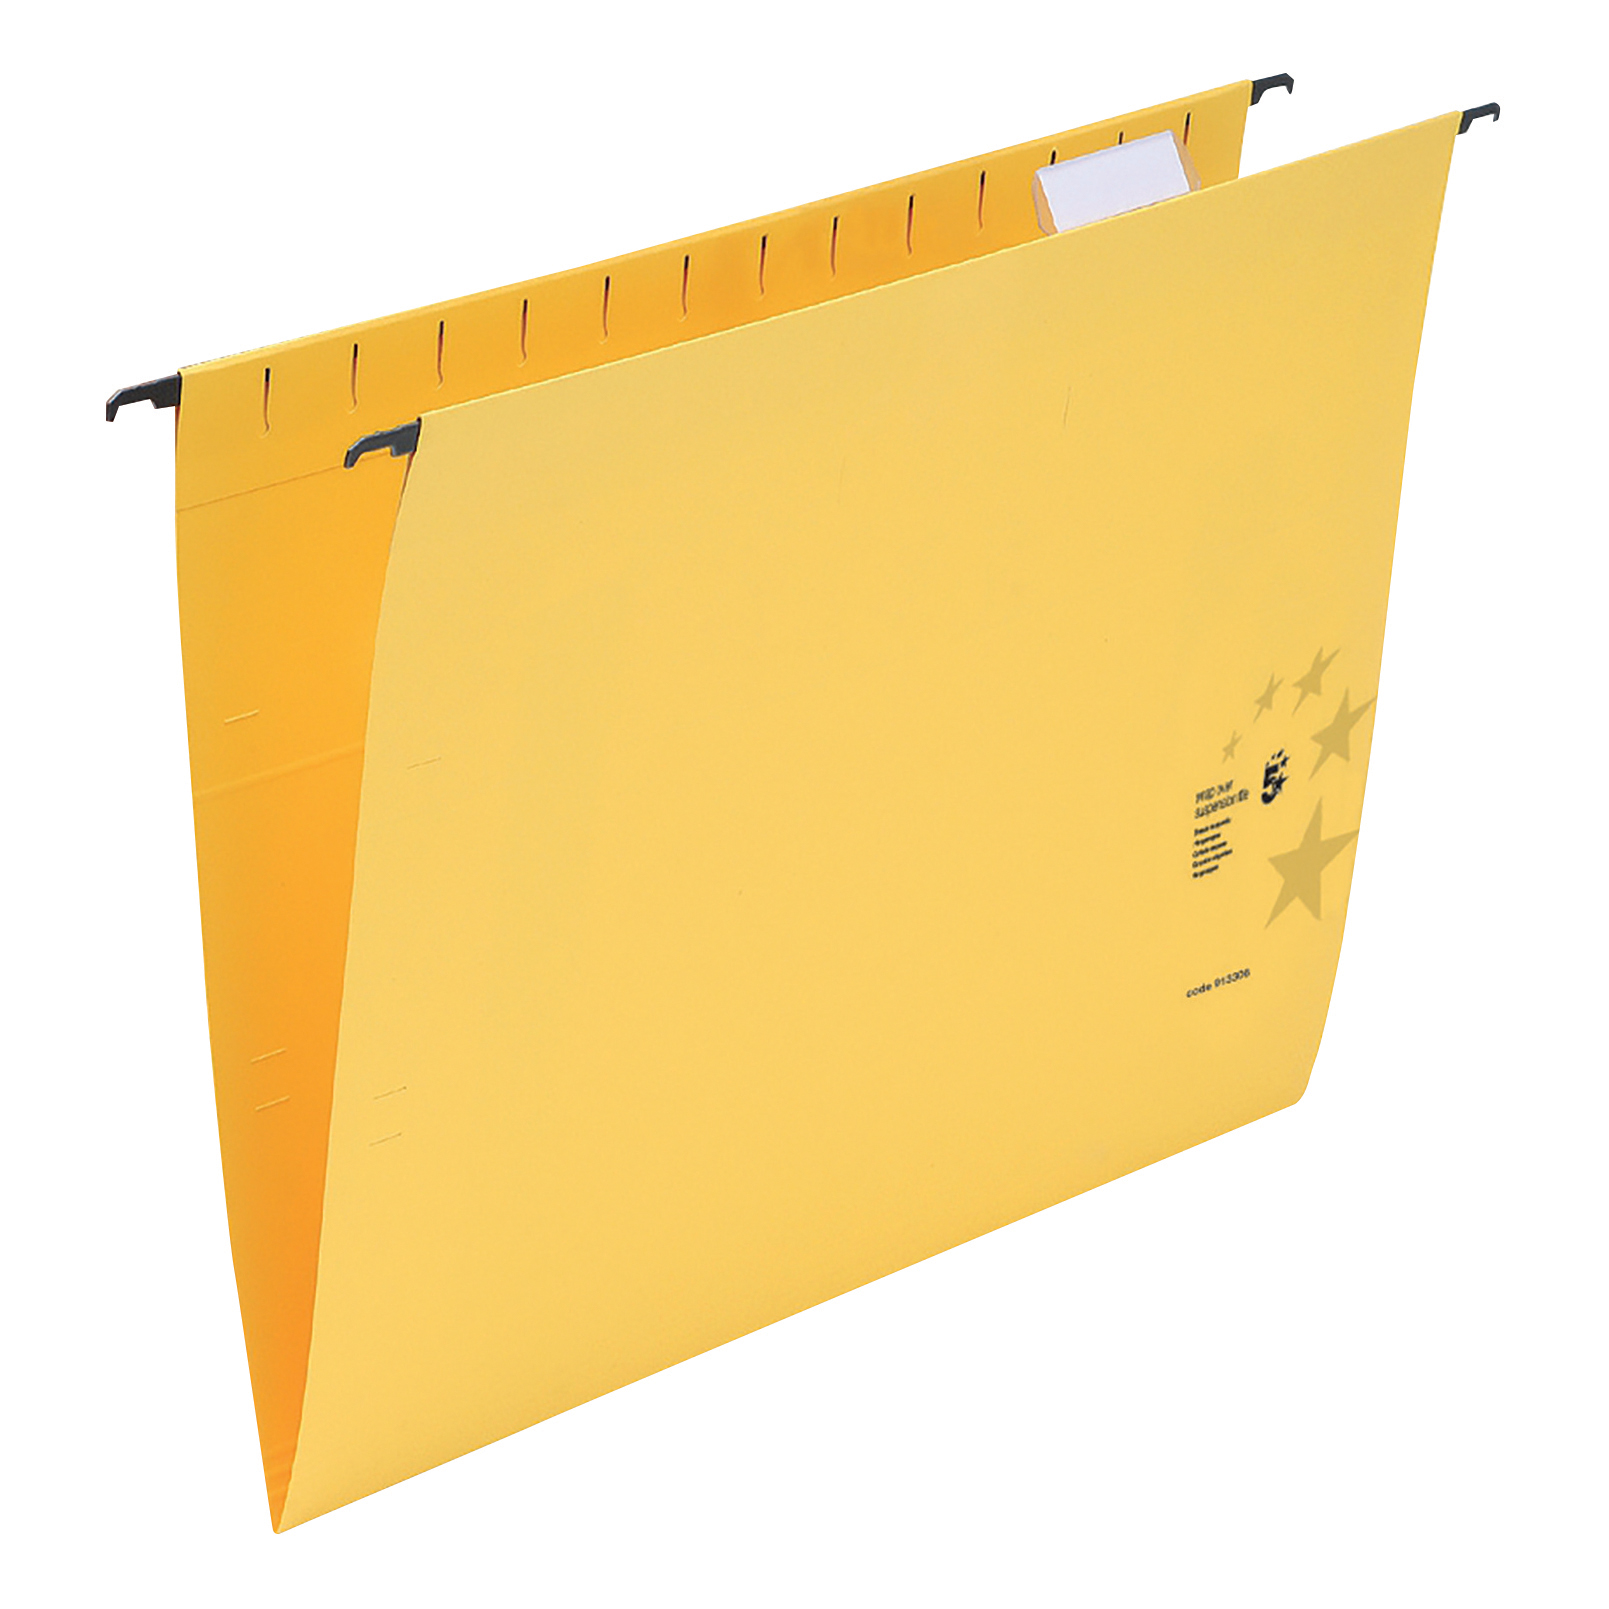 Suspension File 5 Star Office Suspension File with Tabs and Inserts Manilla 15mm V-base 230gsm Foolscap Yellow Pack 50